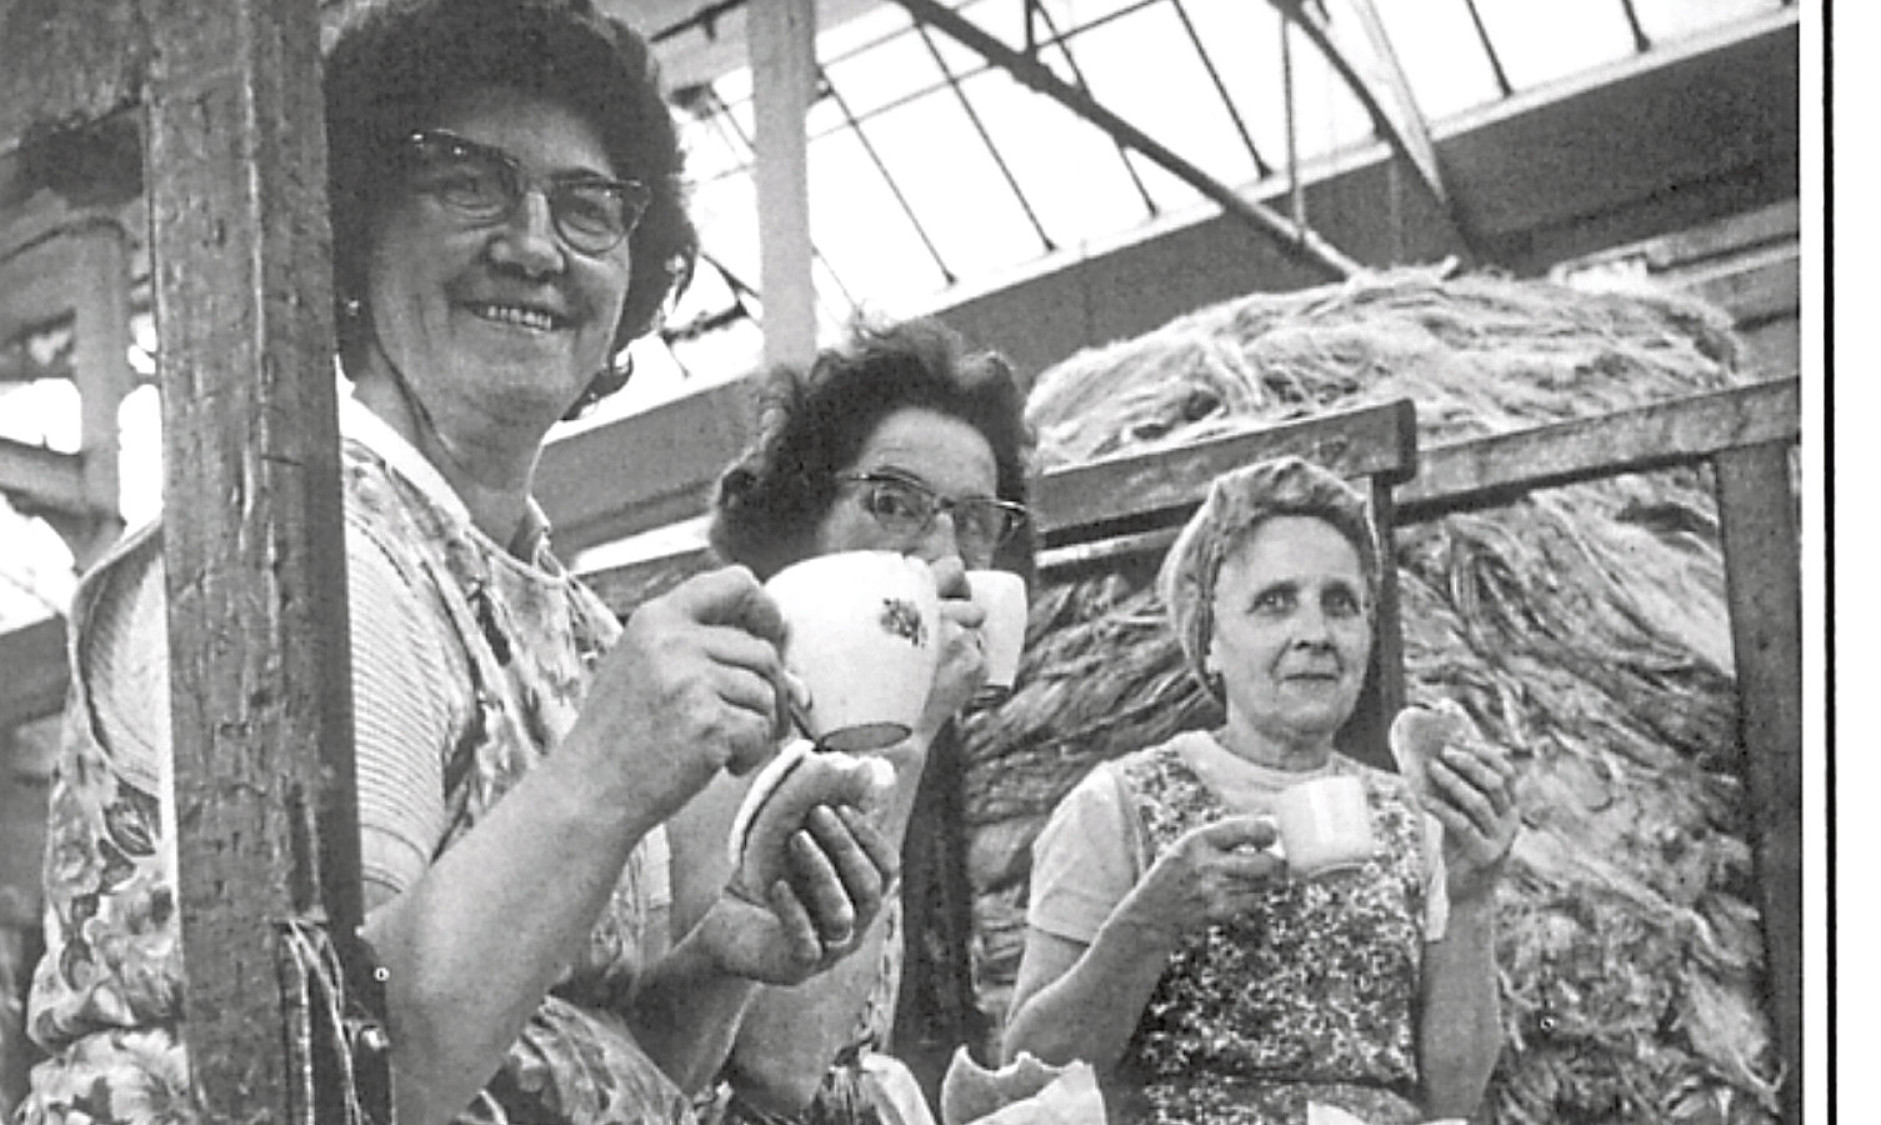 Everyone needs a break: Dundee mill workers take time out for a cup of tea